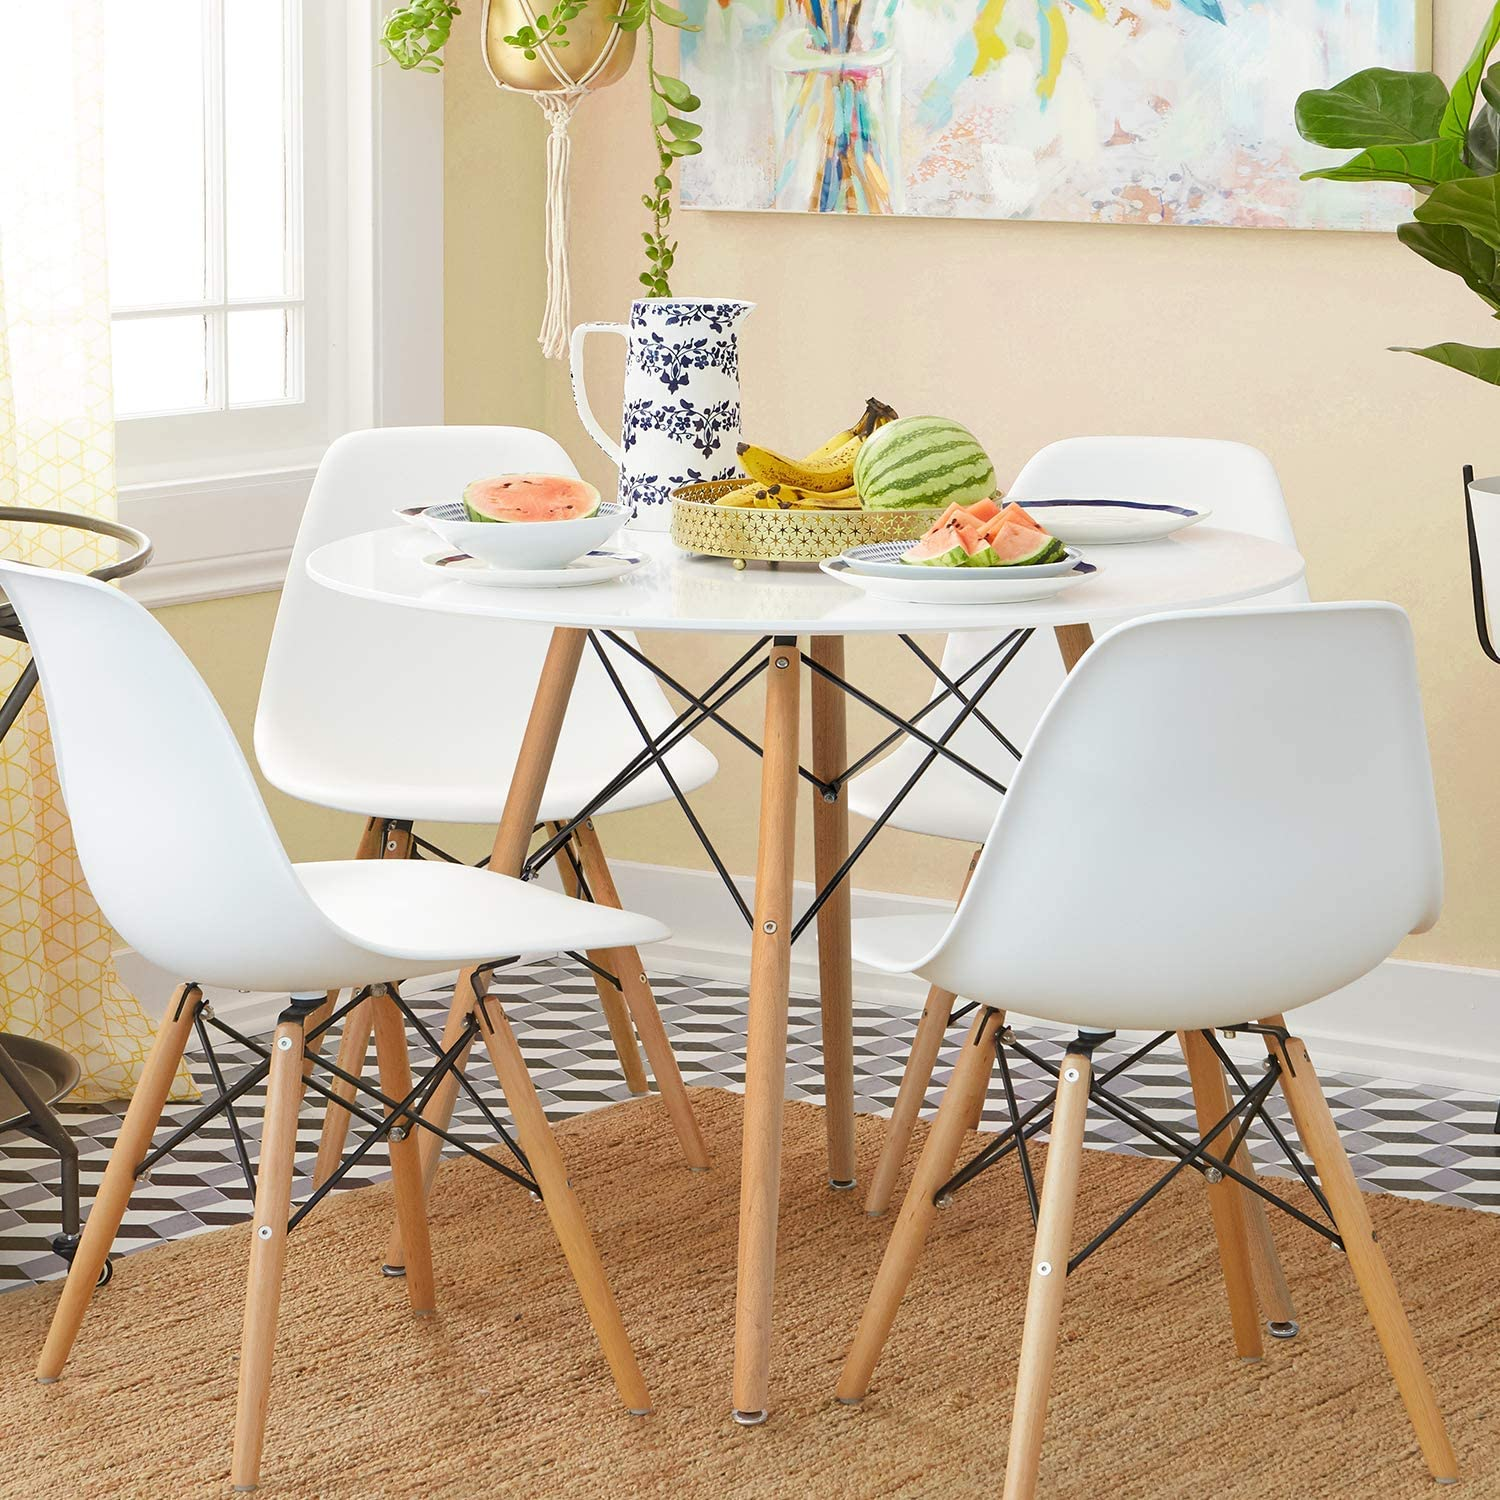 Furgle Modern Coffee Table Round Dining Table White Pedestal Tables Coffee Table Eiffel Mid-Century Modern Style for Living Room